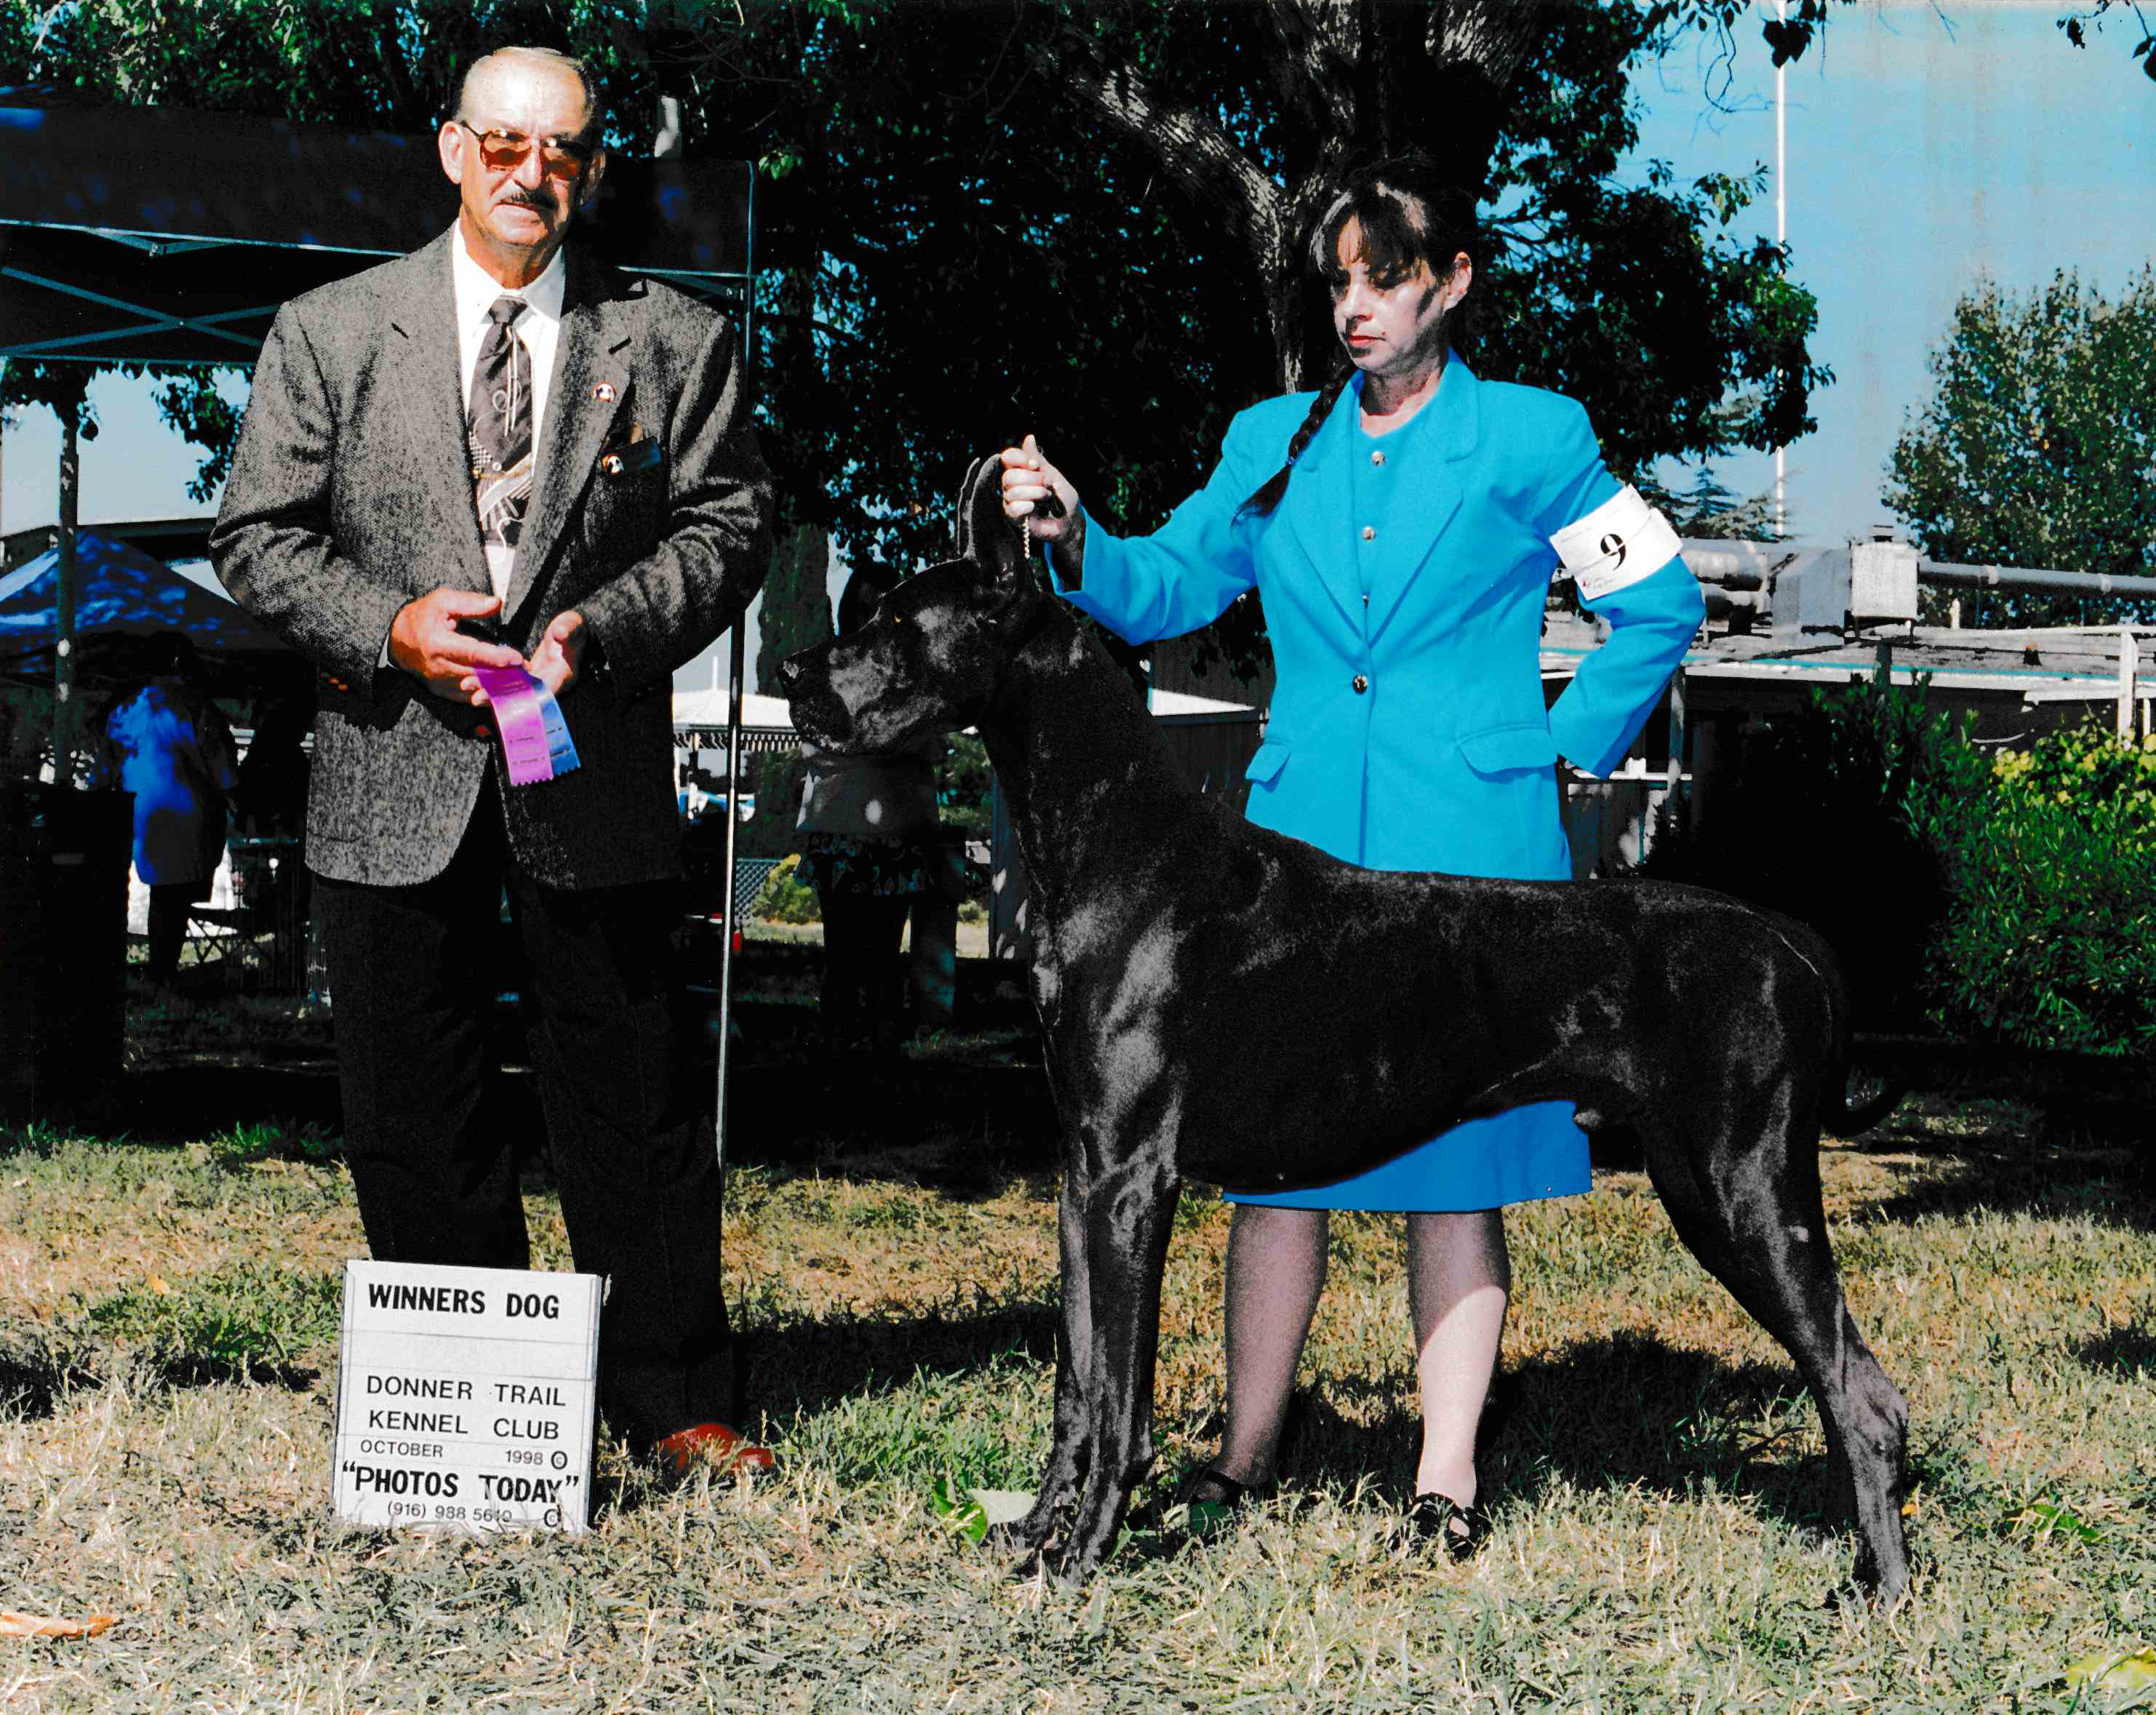 Bandit - Blue Great Dane Champion